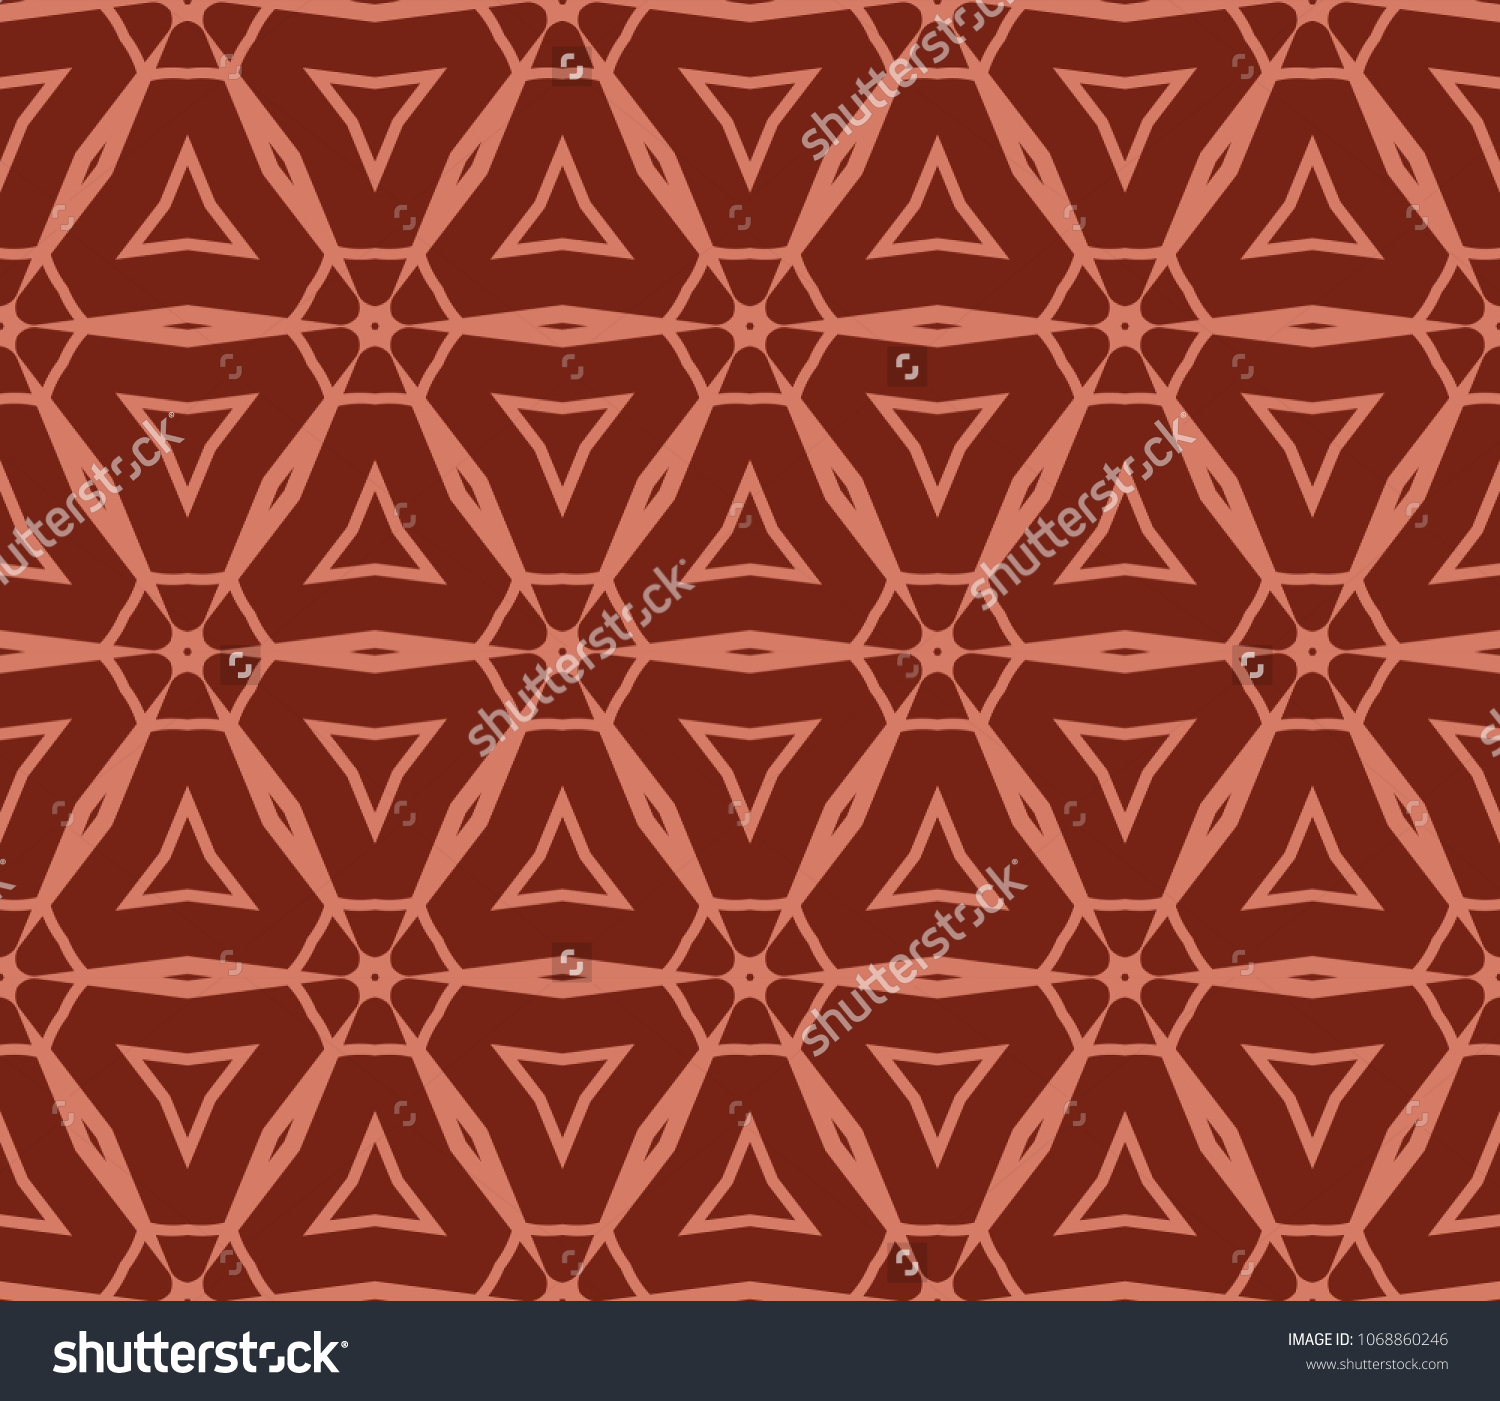 Seamless Vintage , Retro Style Geometric Pattern Vector Illustration For